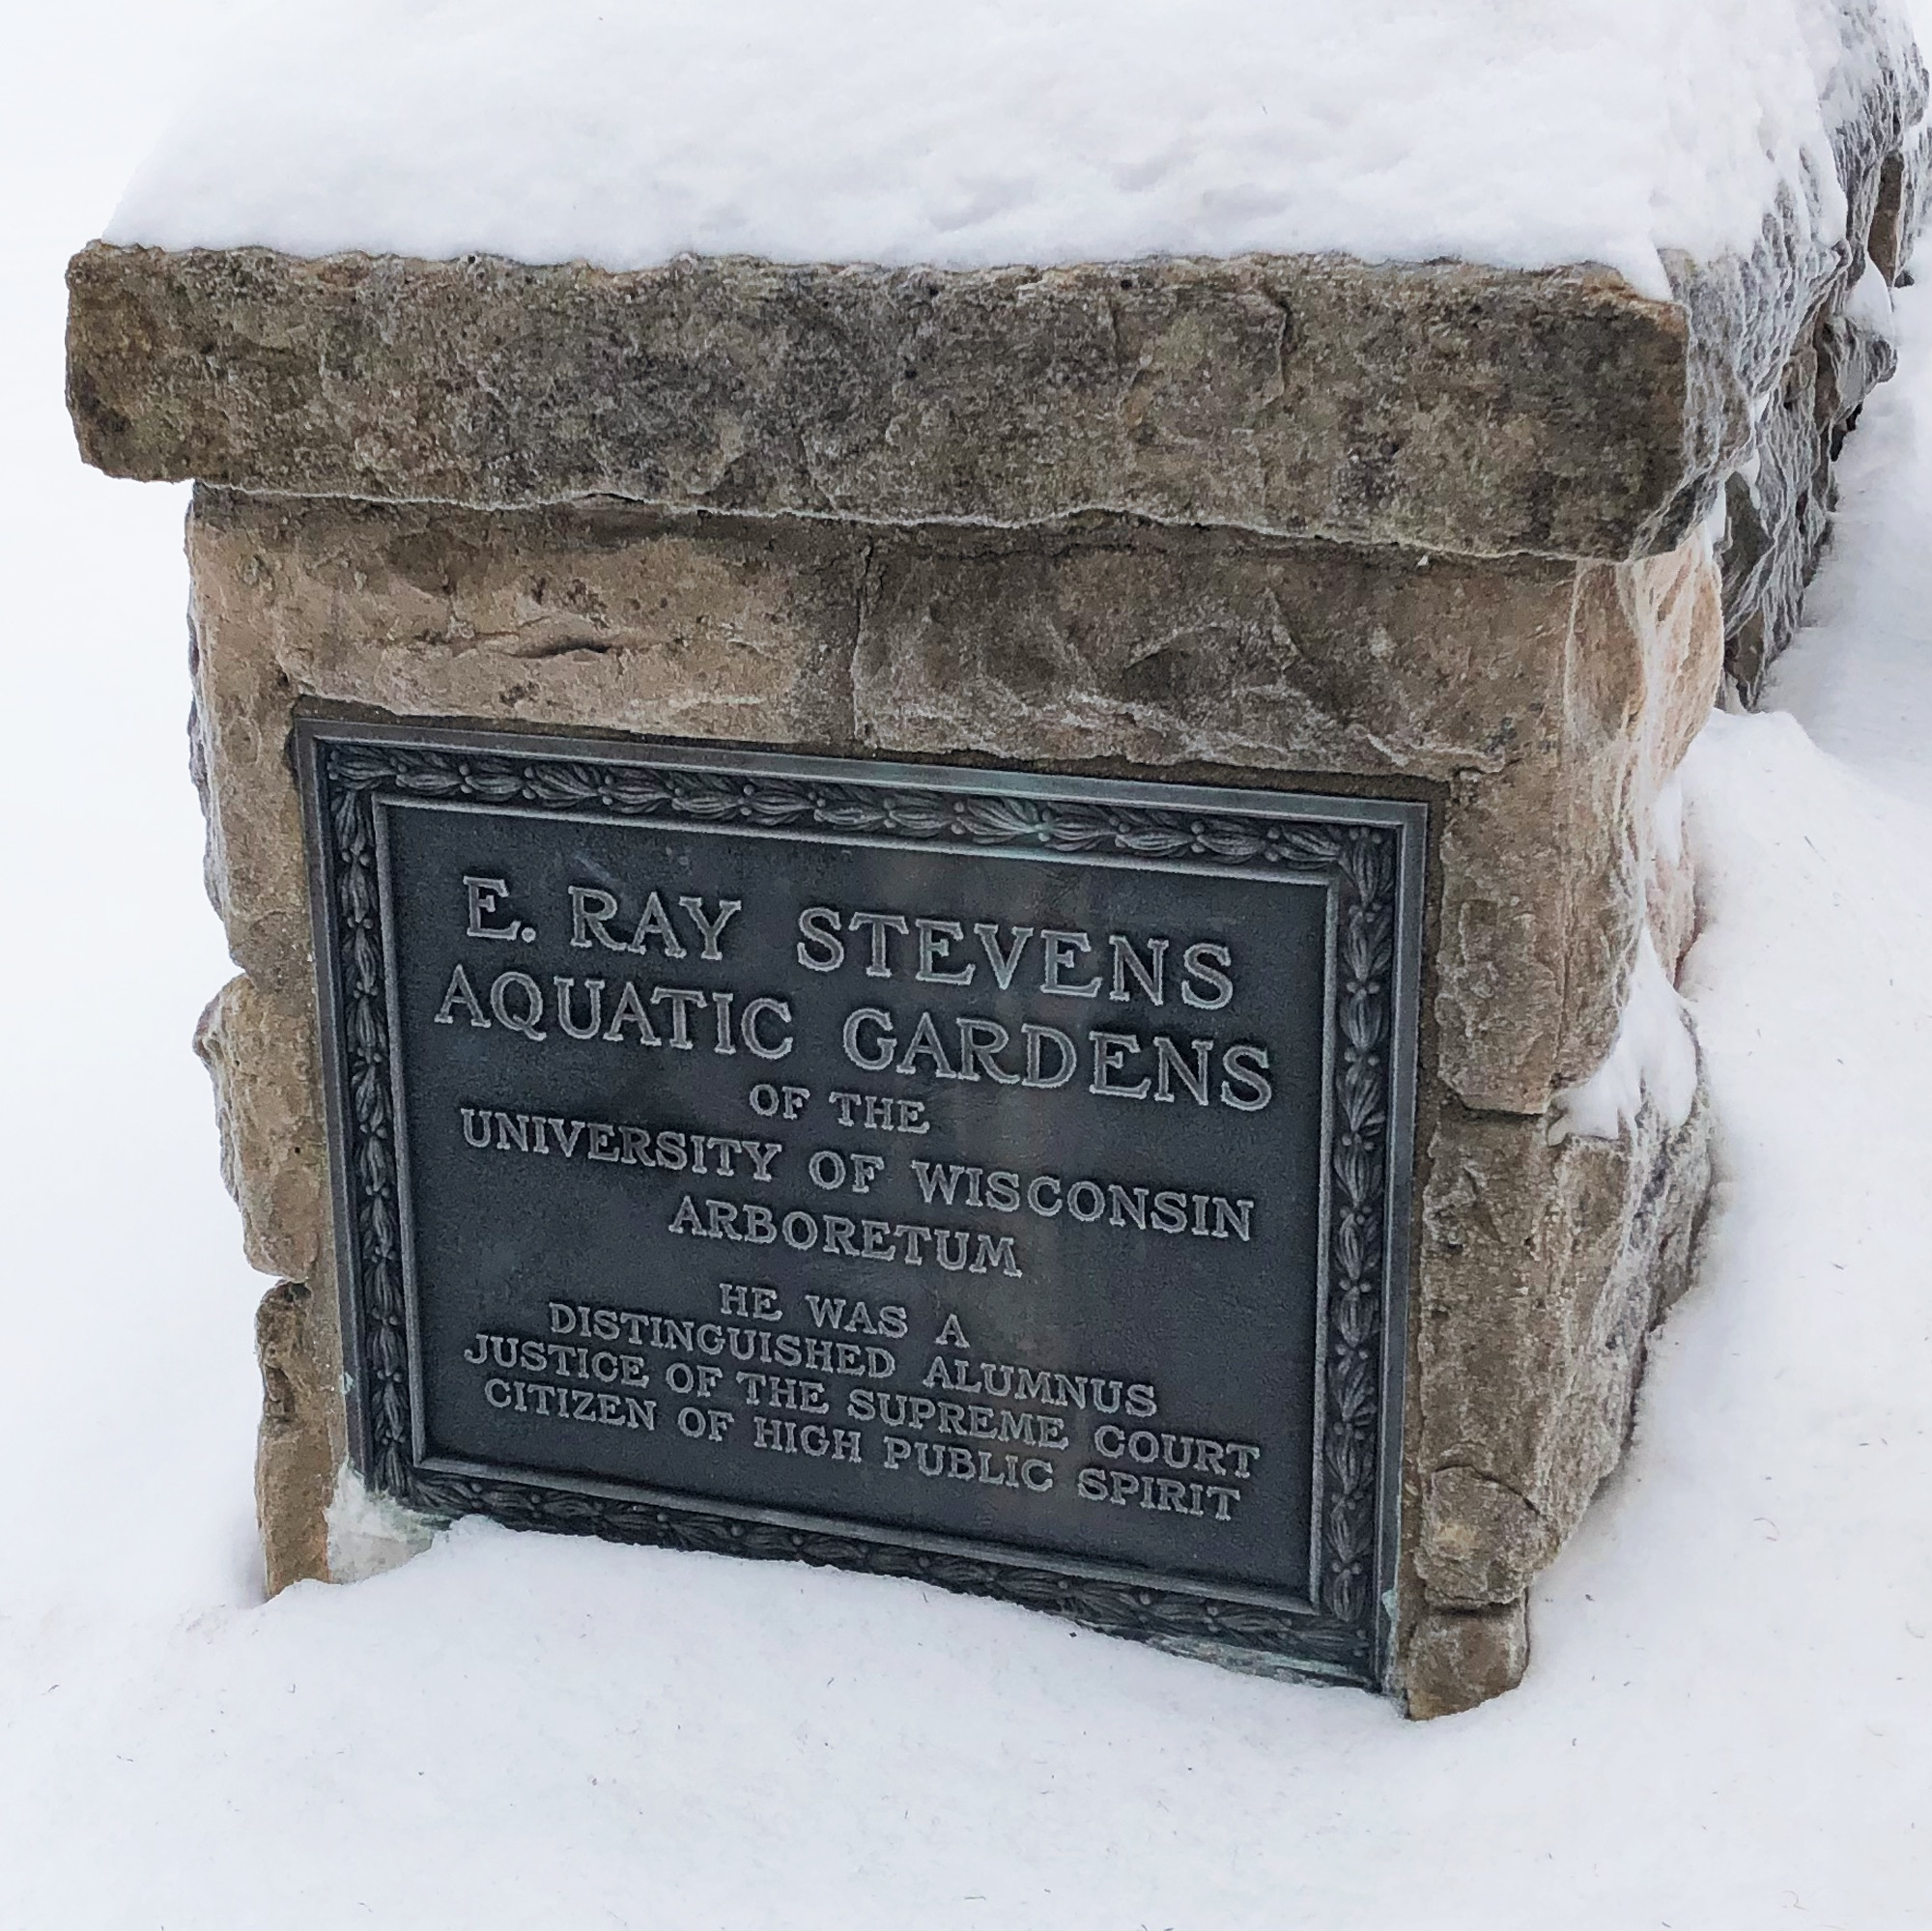 Plaque at entrance to Edmond Ray Stevens Pond and Aquatic Gardens.